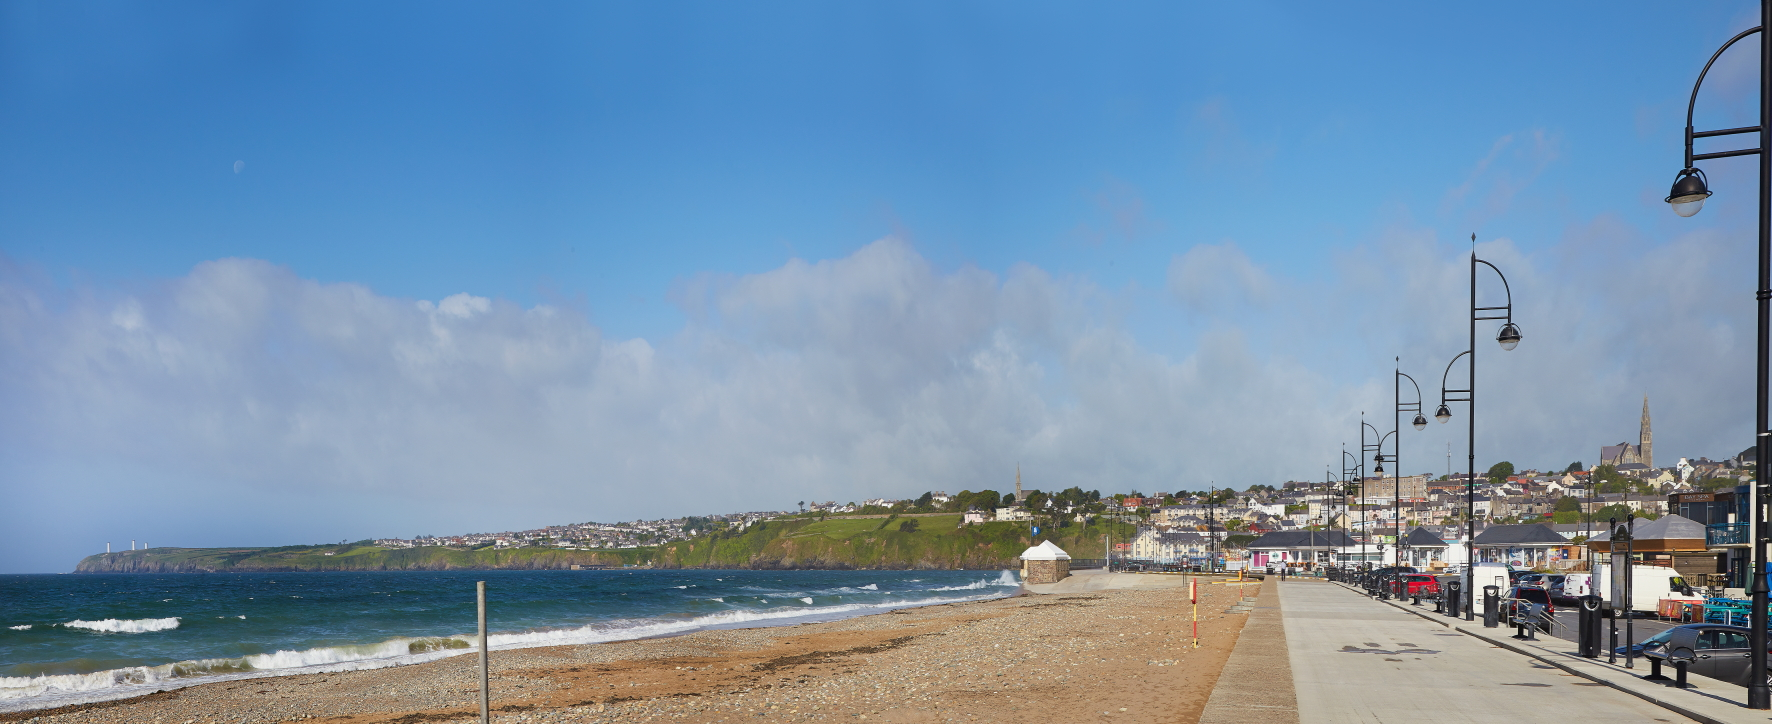 Tramore Beach | | UPDATED June 2020 Top Tips Before You